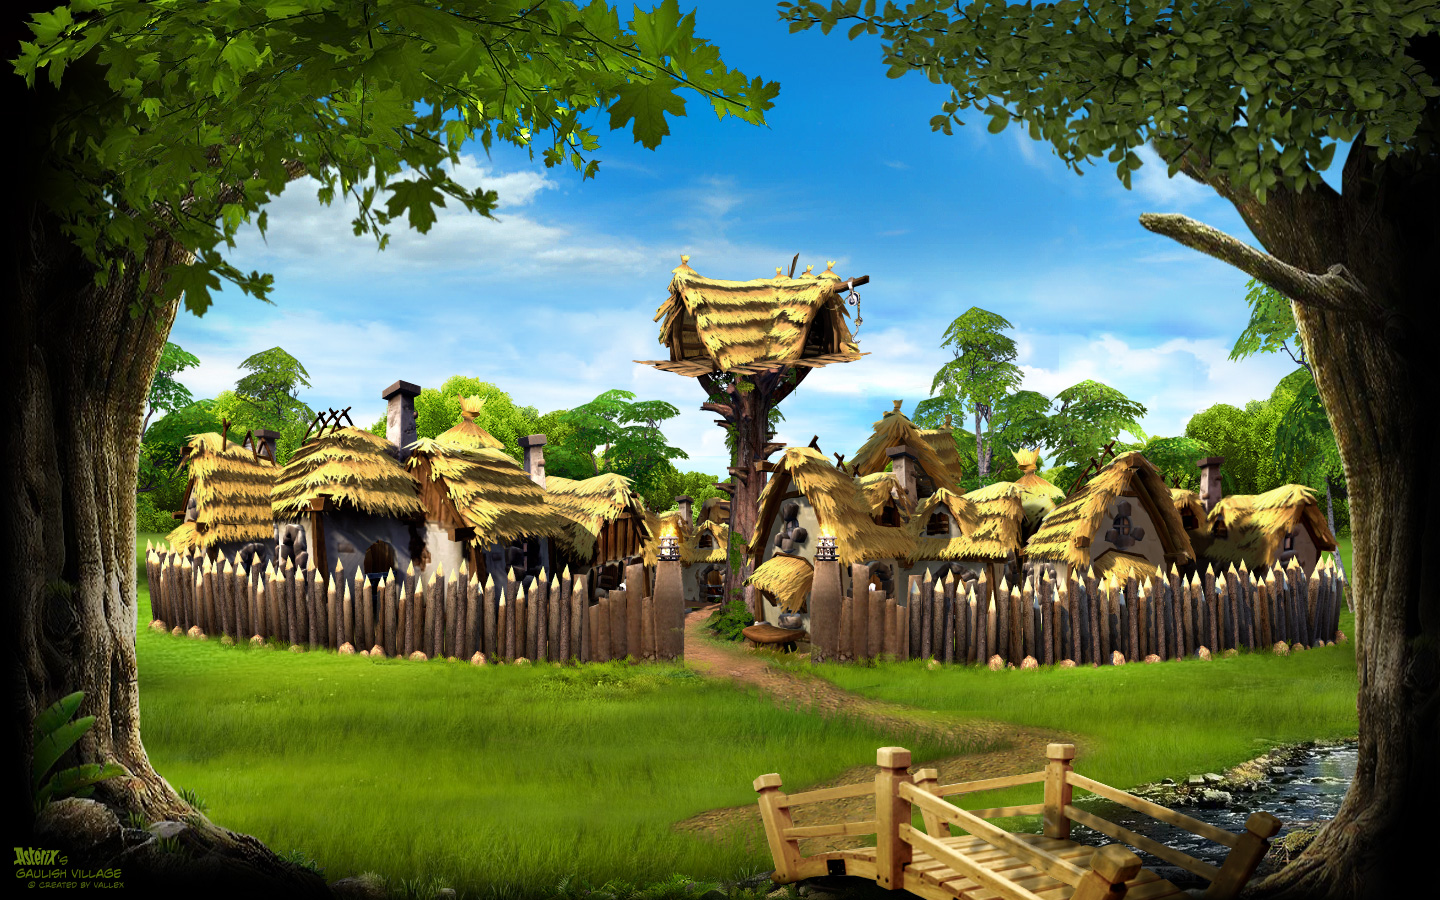 125270-asterix-gaulish-village-wallpaper_1440x900